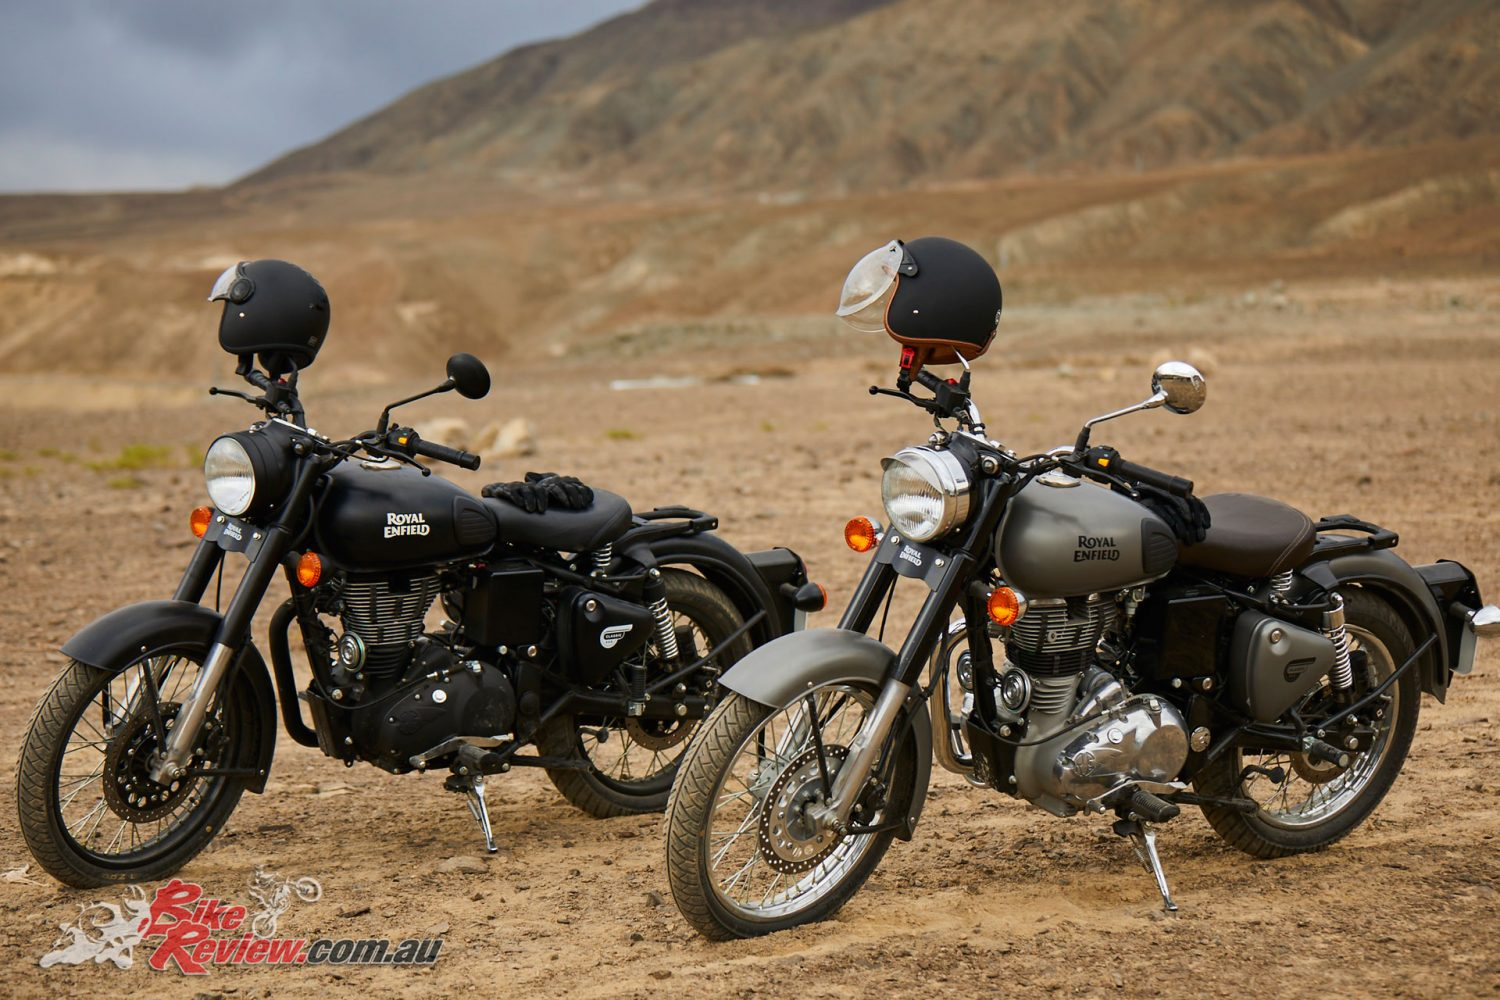 Modified bullet bikes in bangalore dating 10